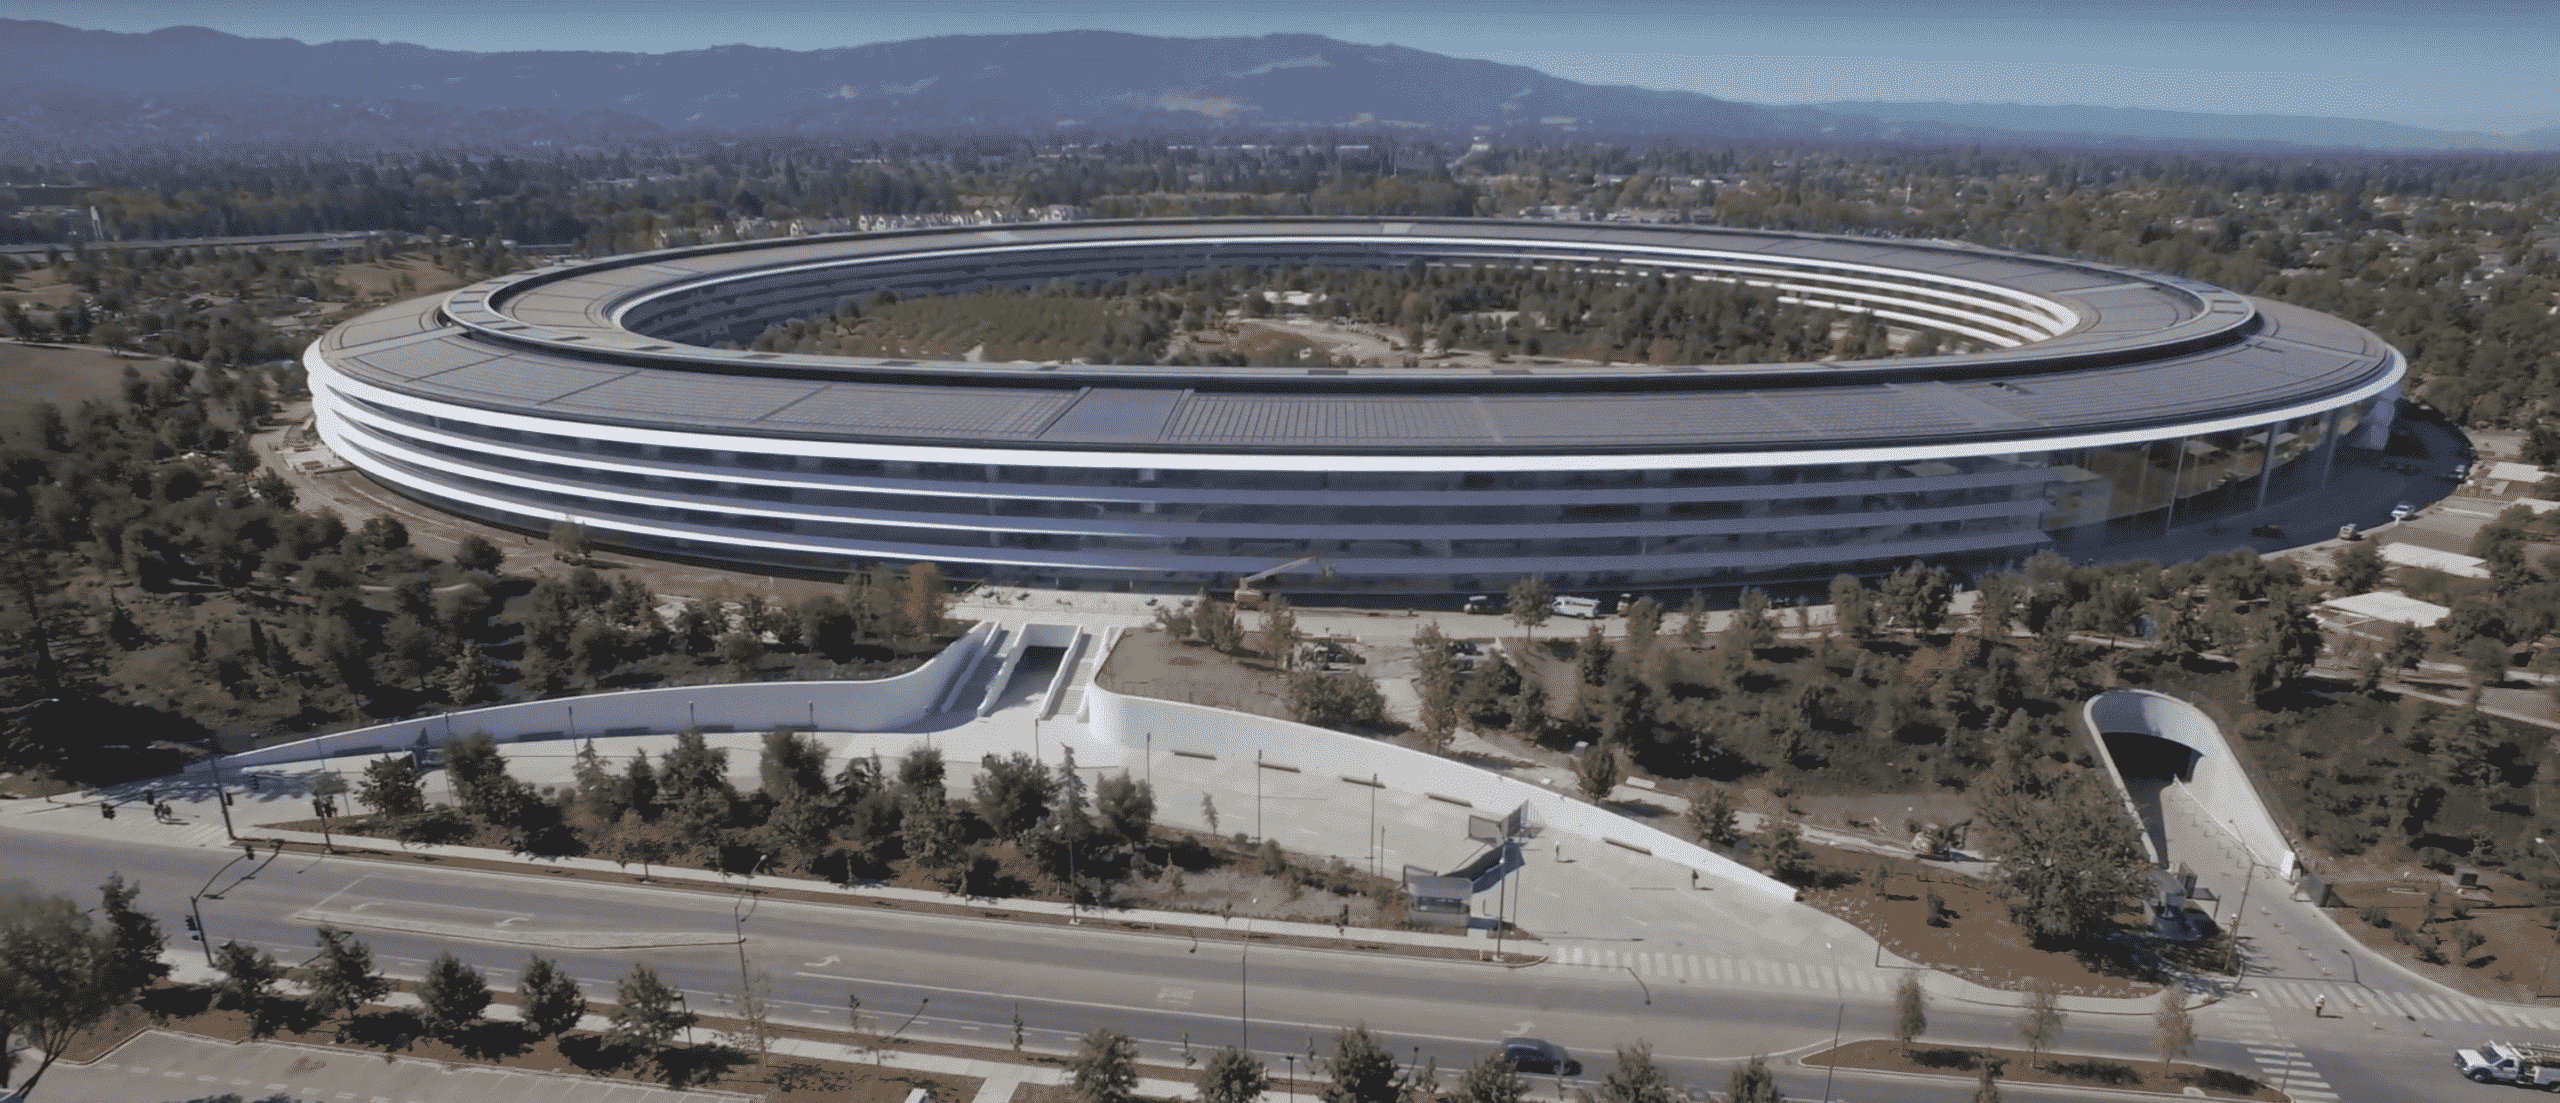 Home office until mid-2021: Apple revised the revised schedule